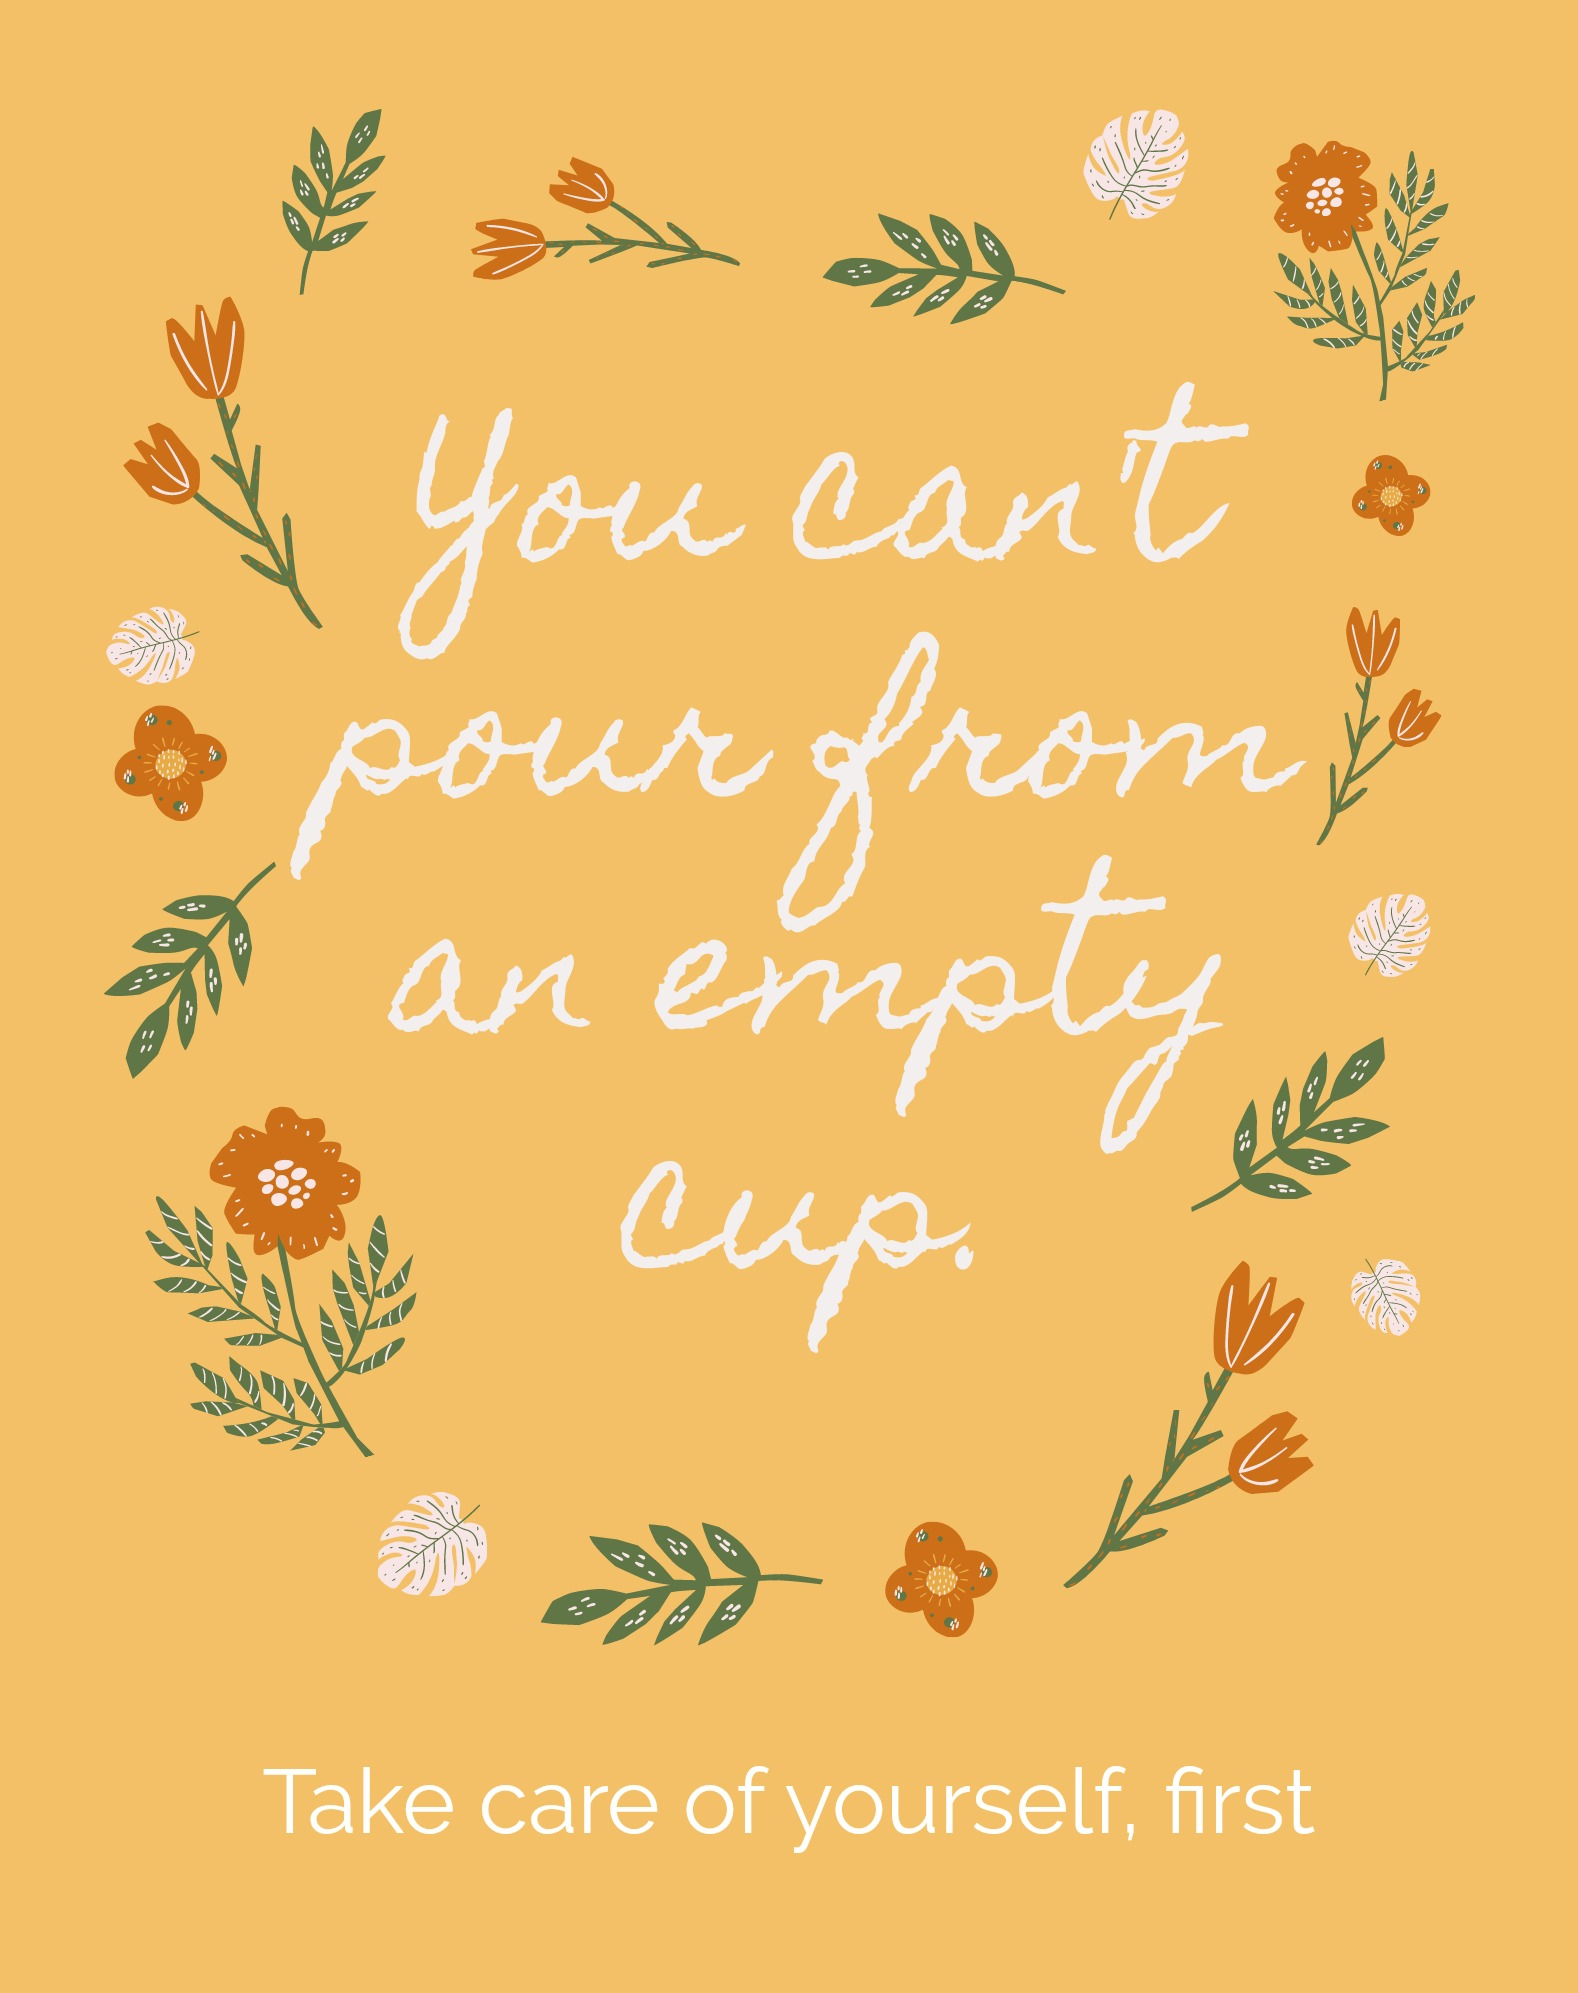 """You can't pour from an empty cup. Take care of yourself first"" inspirational quote"